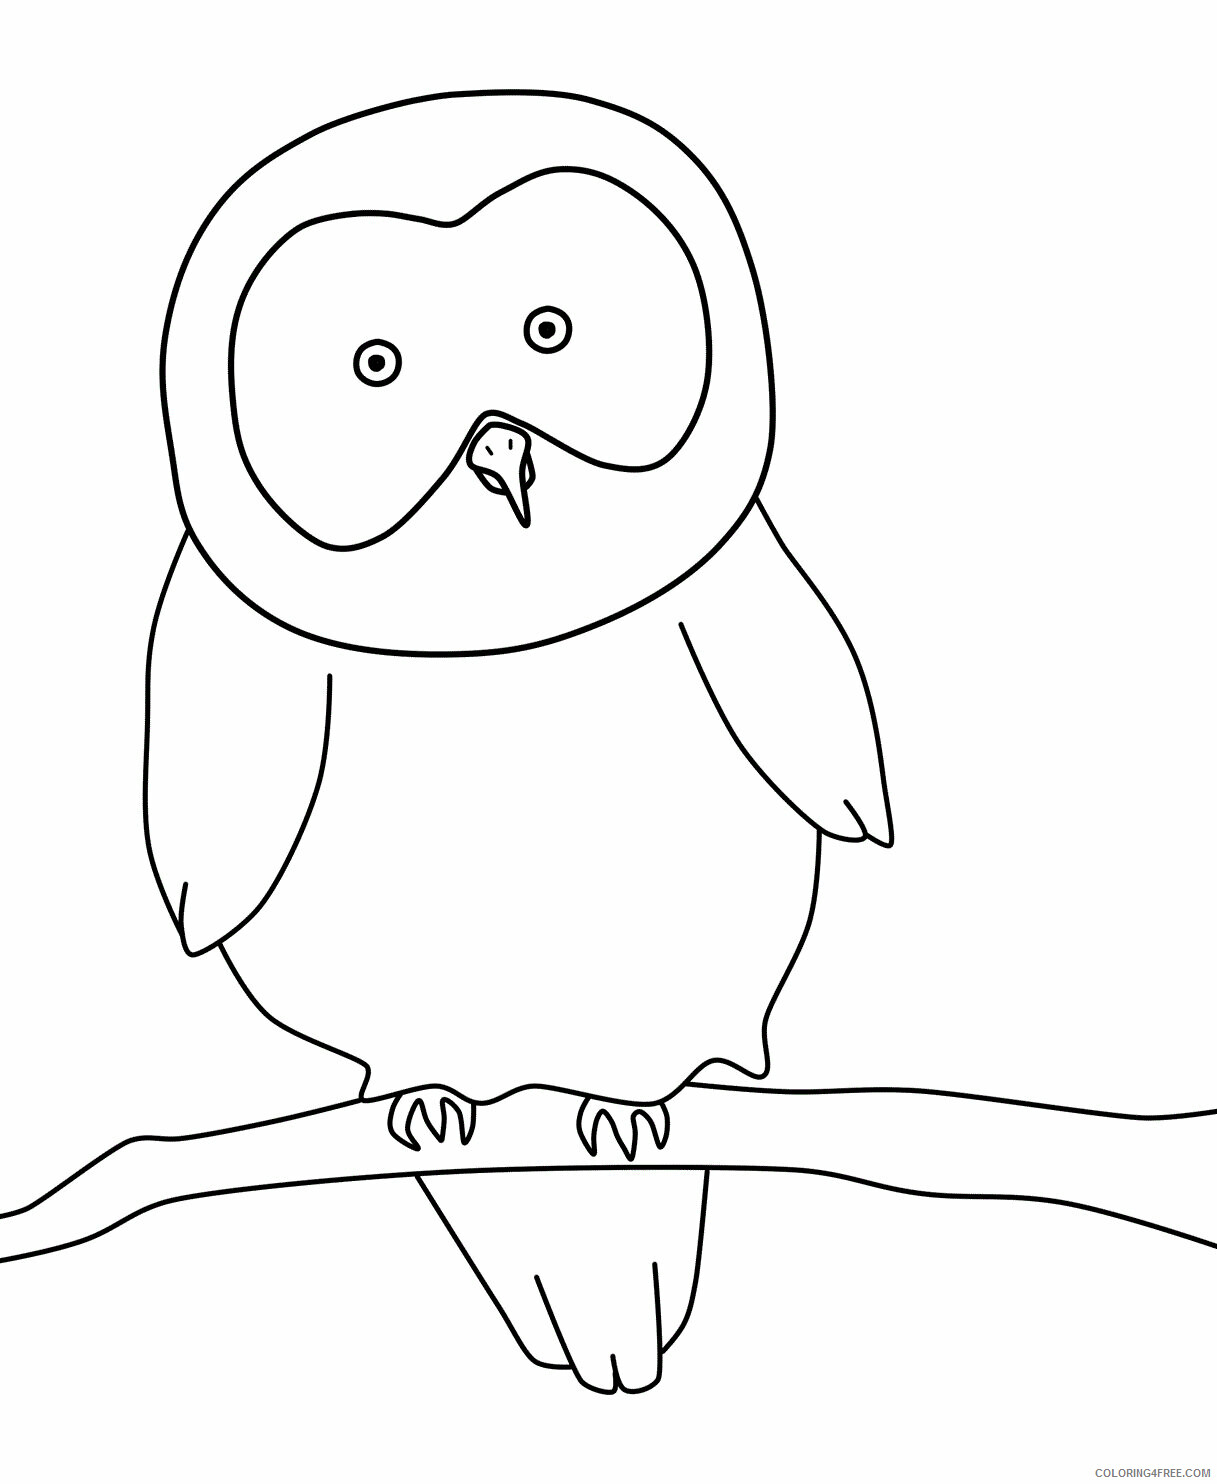 Owl Coloring Pages Animal Printable Sheets of Owls 2021 3615 Coloring4free